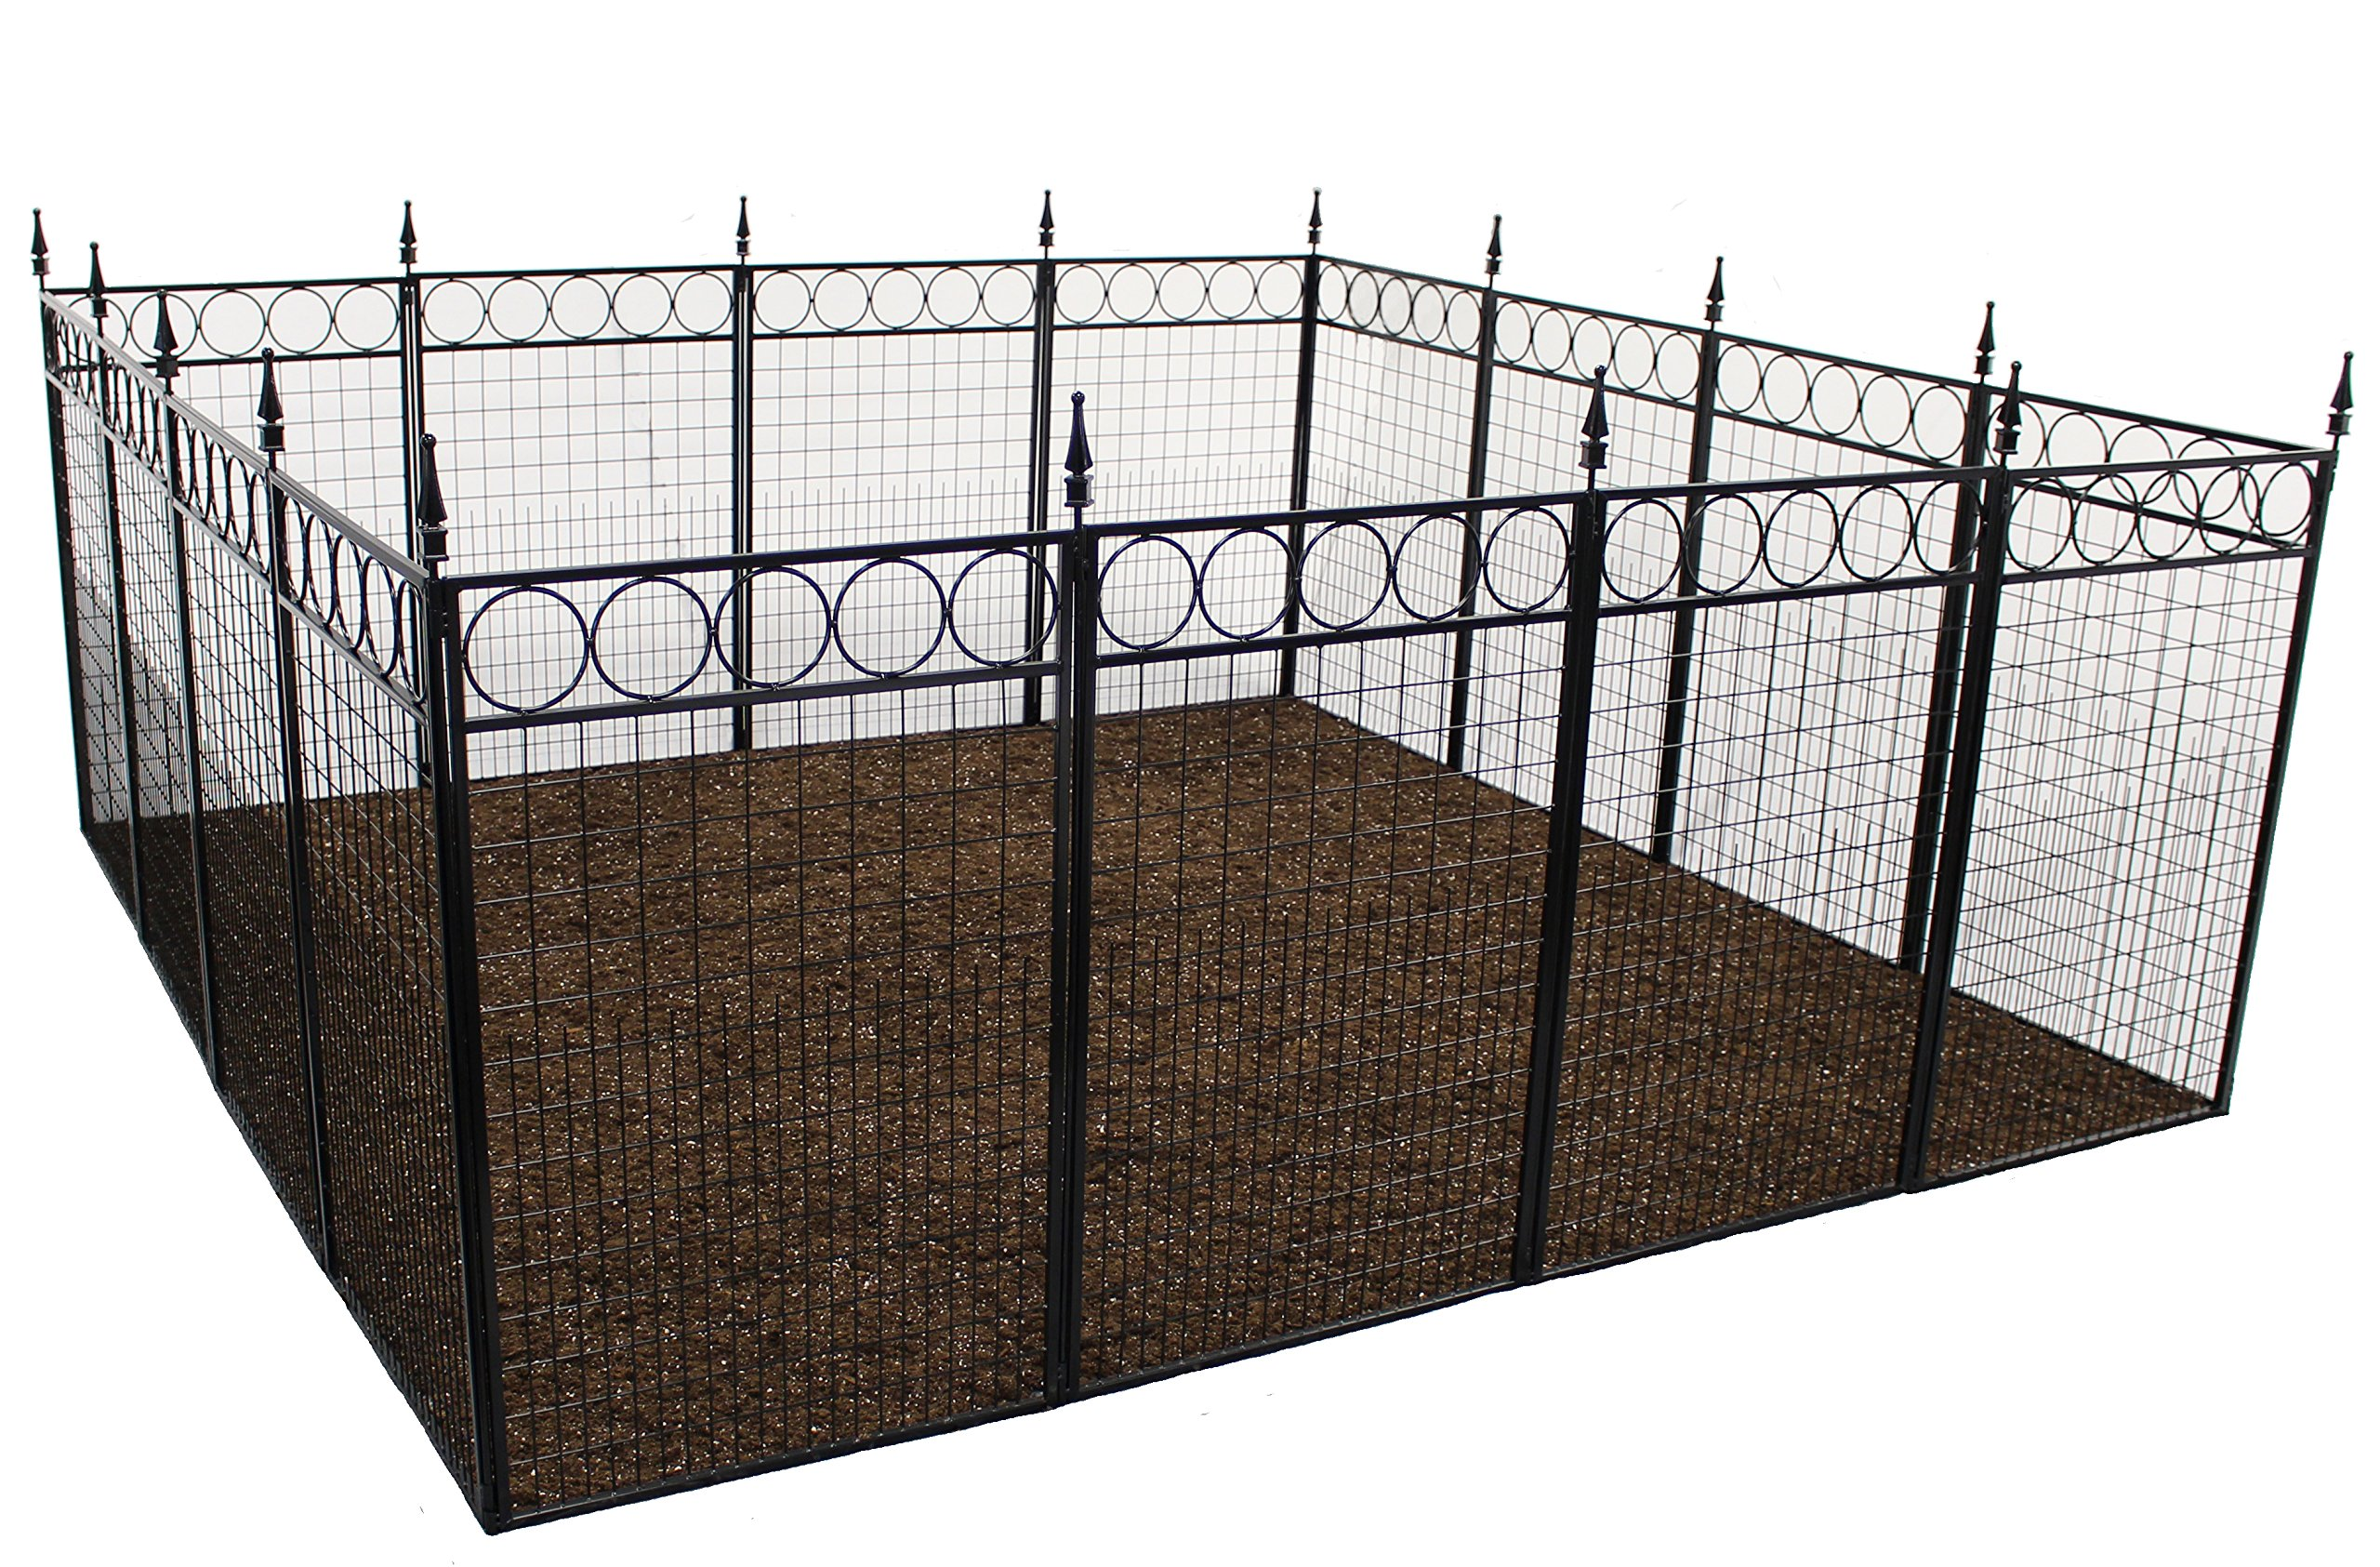 Terra Garden Fence, Westchester (GF-1), Protect & Beautify, 32 Feet of Fencing Included, 36 inch Tall Animal Barrier (Black)